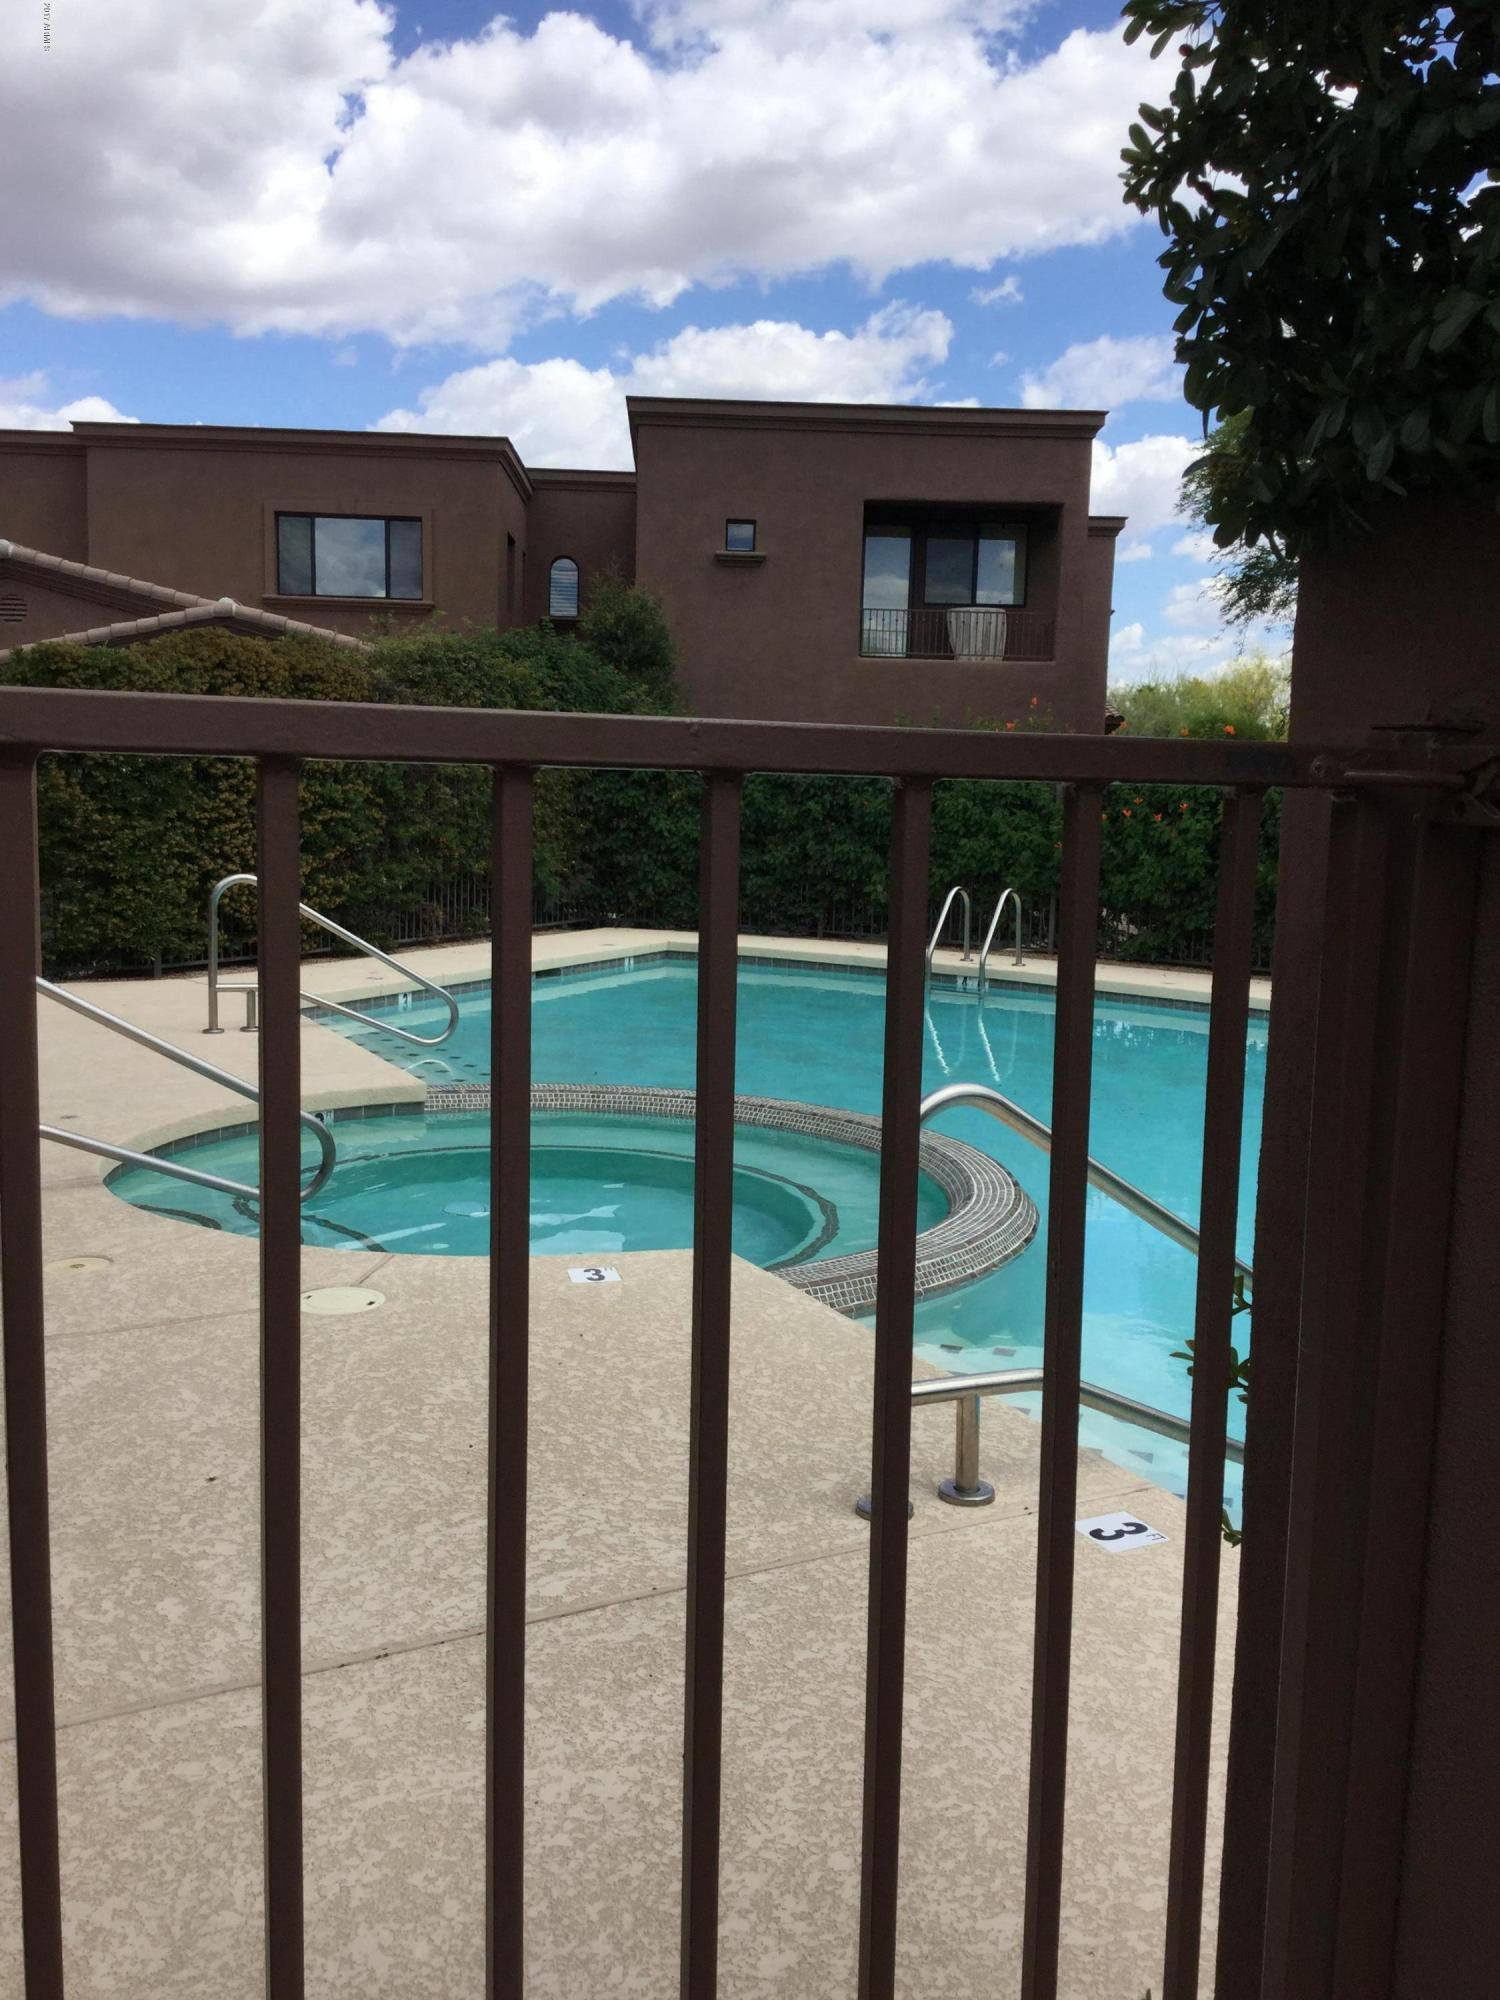 MLS 5969019 7200 E Ridgeview Place Unit 5, Carefree, AZ 85377 Carefree AZ Condo or Townhome